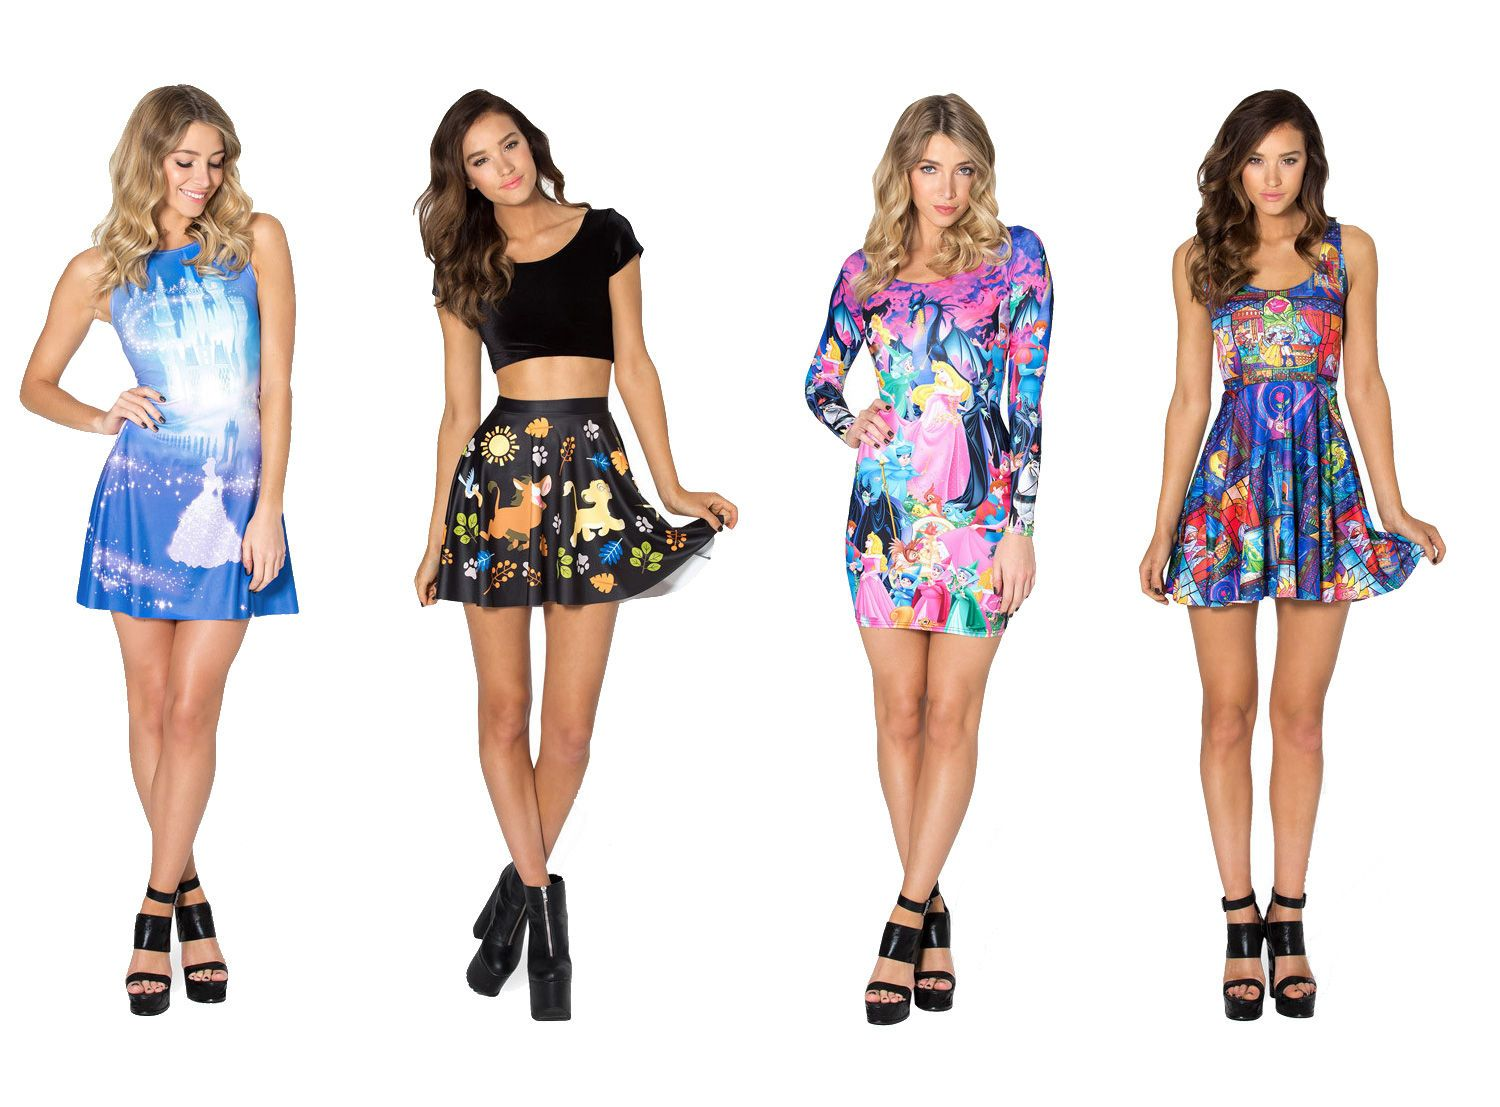 Now Presenting A Disney Princess Themed Clothing Collection For